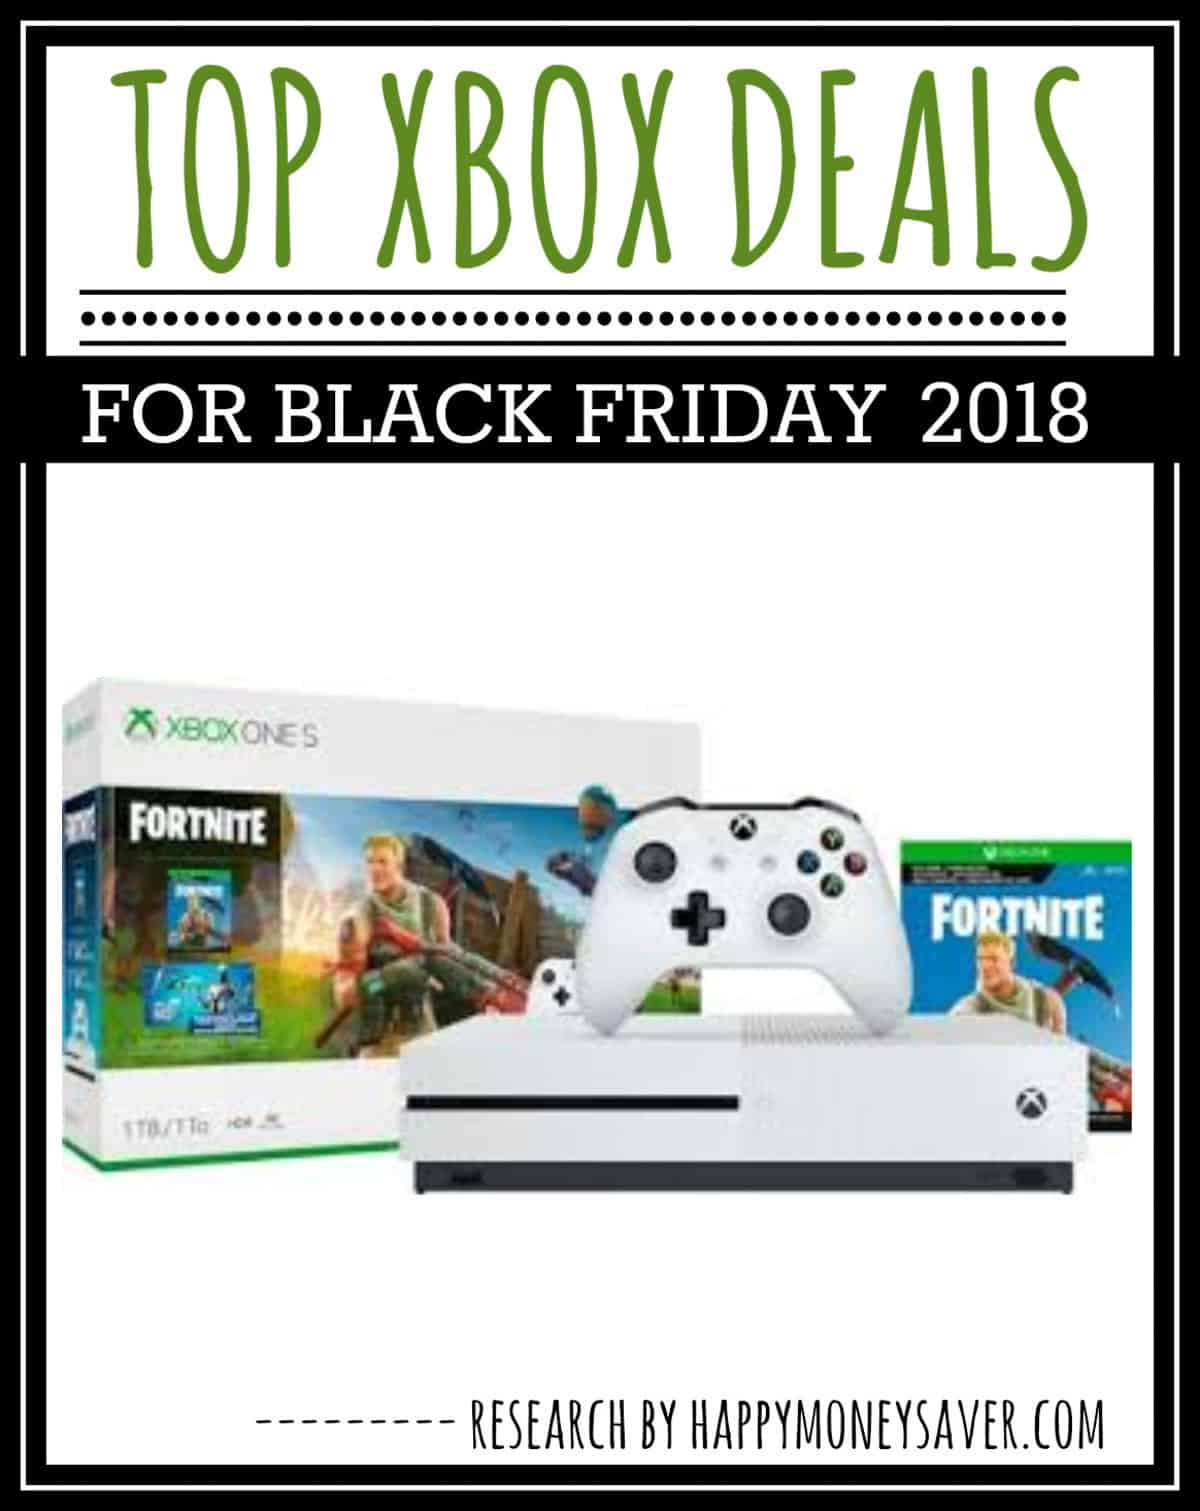 Black Friday Xbox One S Fortnite | Fortnite Aimbot 2018 Free